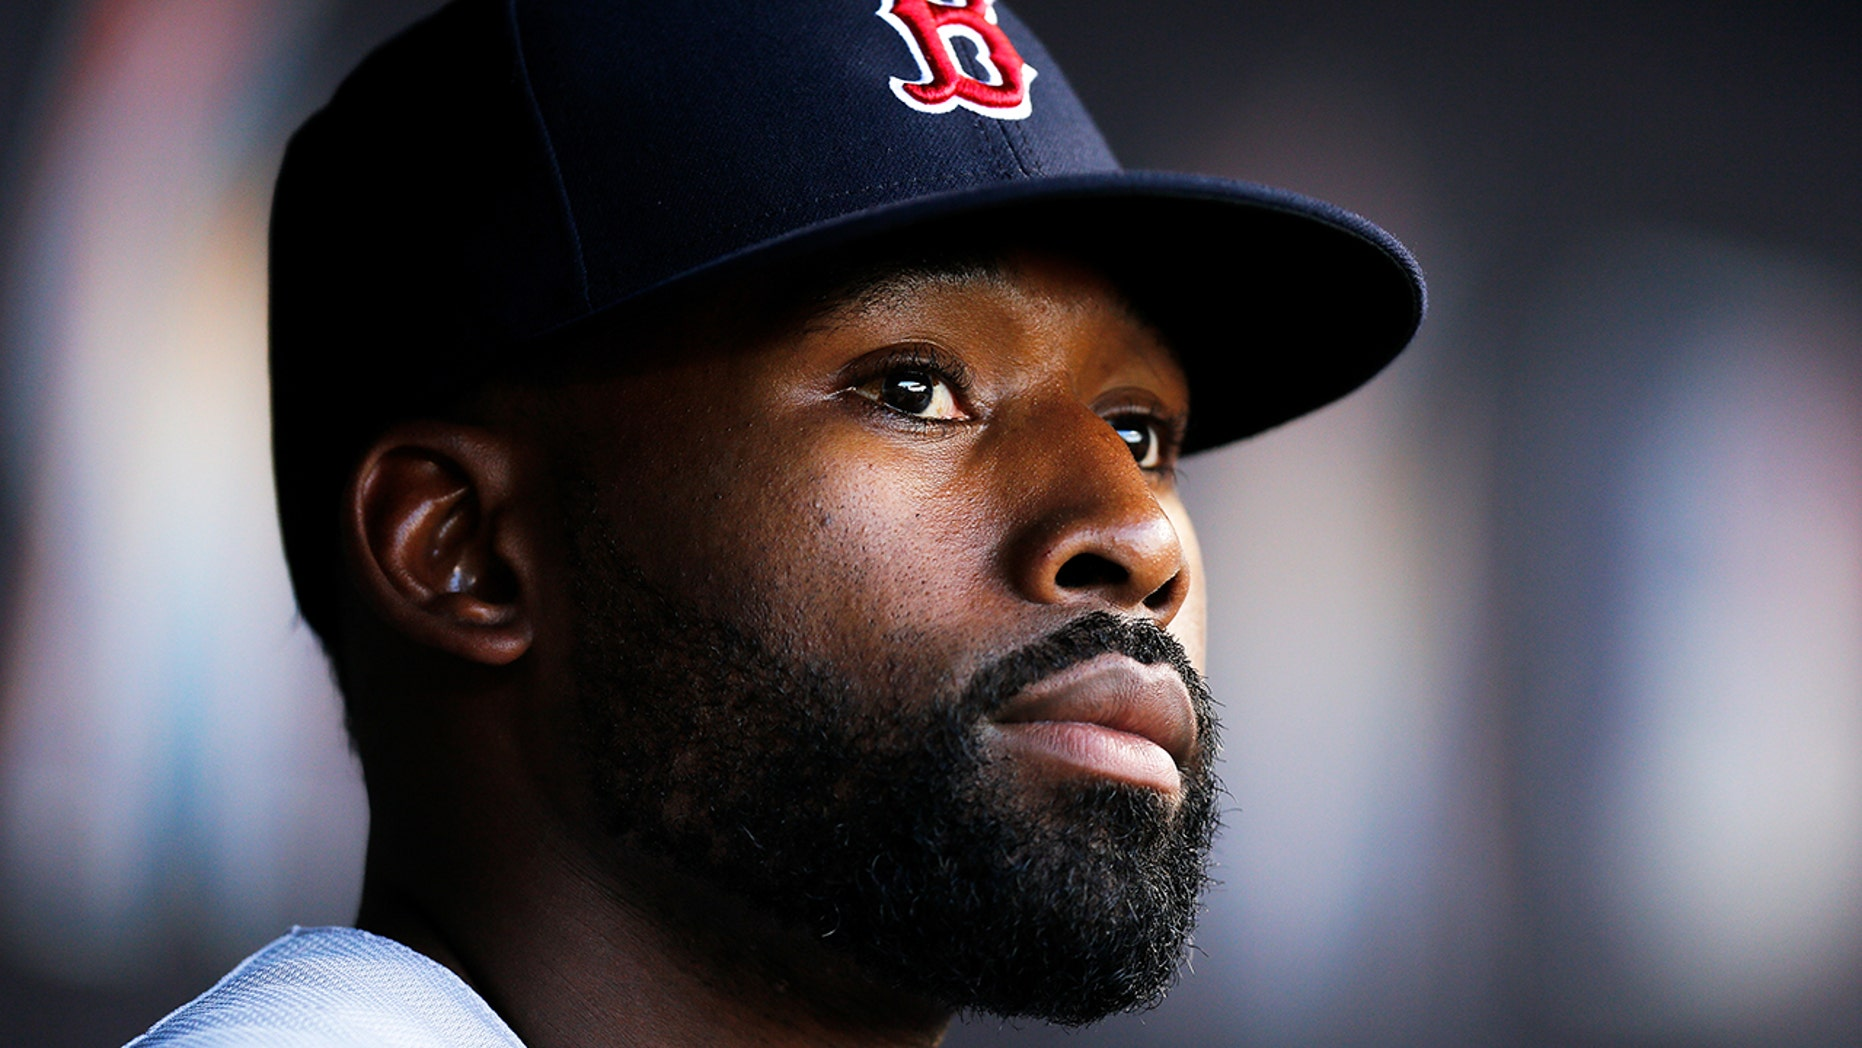 Jackie Bradley Jr. of the Boston Red Sox said Wednesday that he won't be attending the White House ceremony celebrating the team's 2018 World Series championship, a report said. (Michael Reaves/Getty)